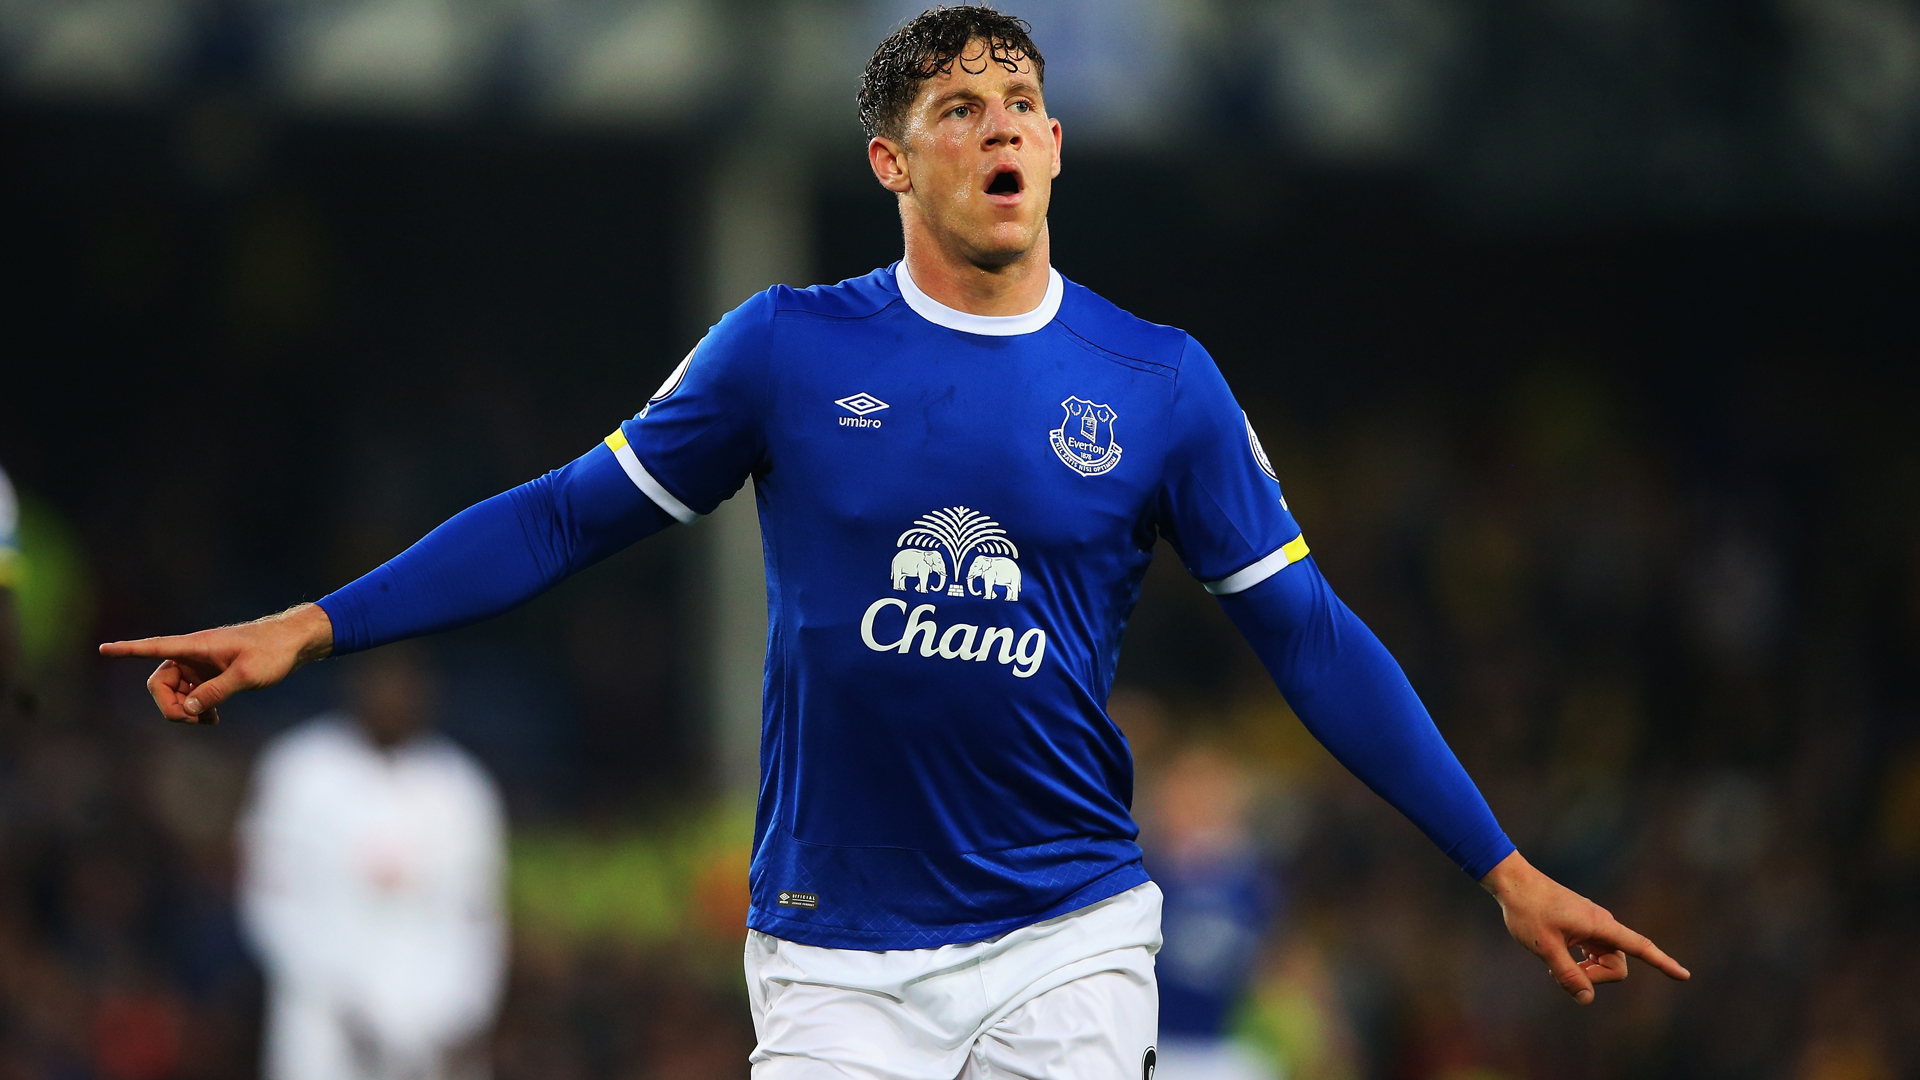 Ronald Koeman admits Ross Barkley's Everton future is 'not a clear situation'